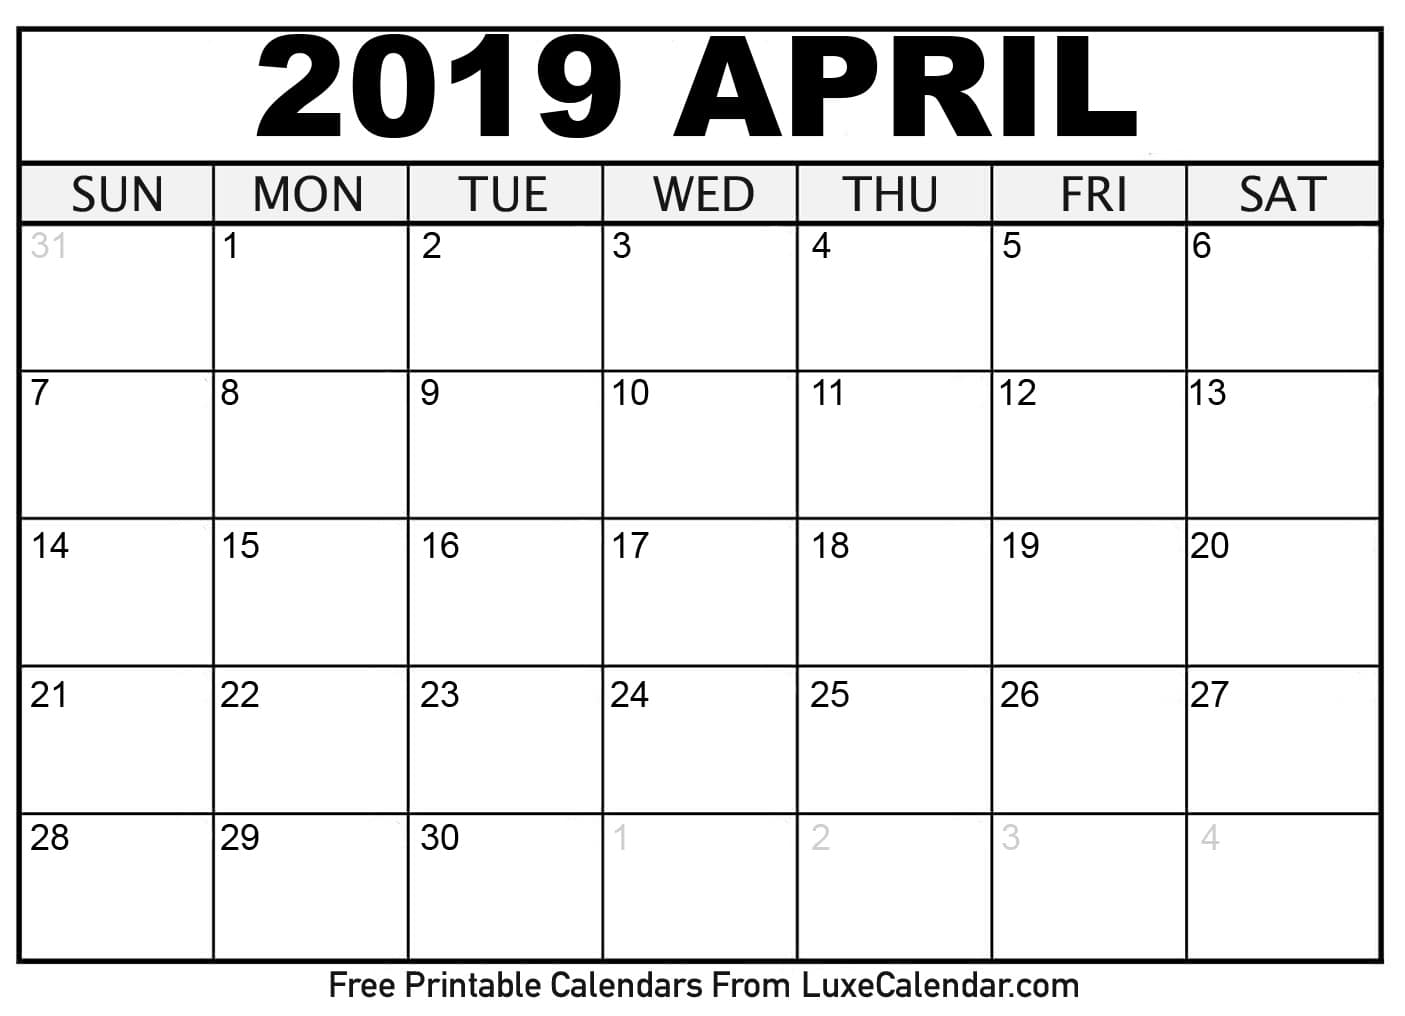 photograph relating to April Calender Printable known as Blank April 2019 Calendar Printable Vacations Template Phrase